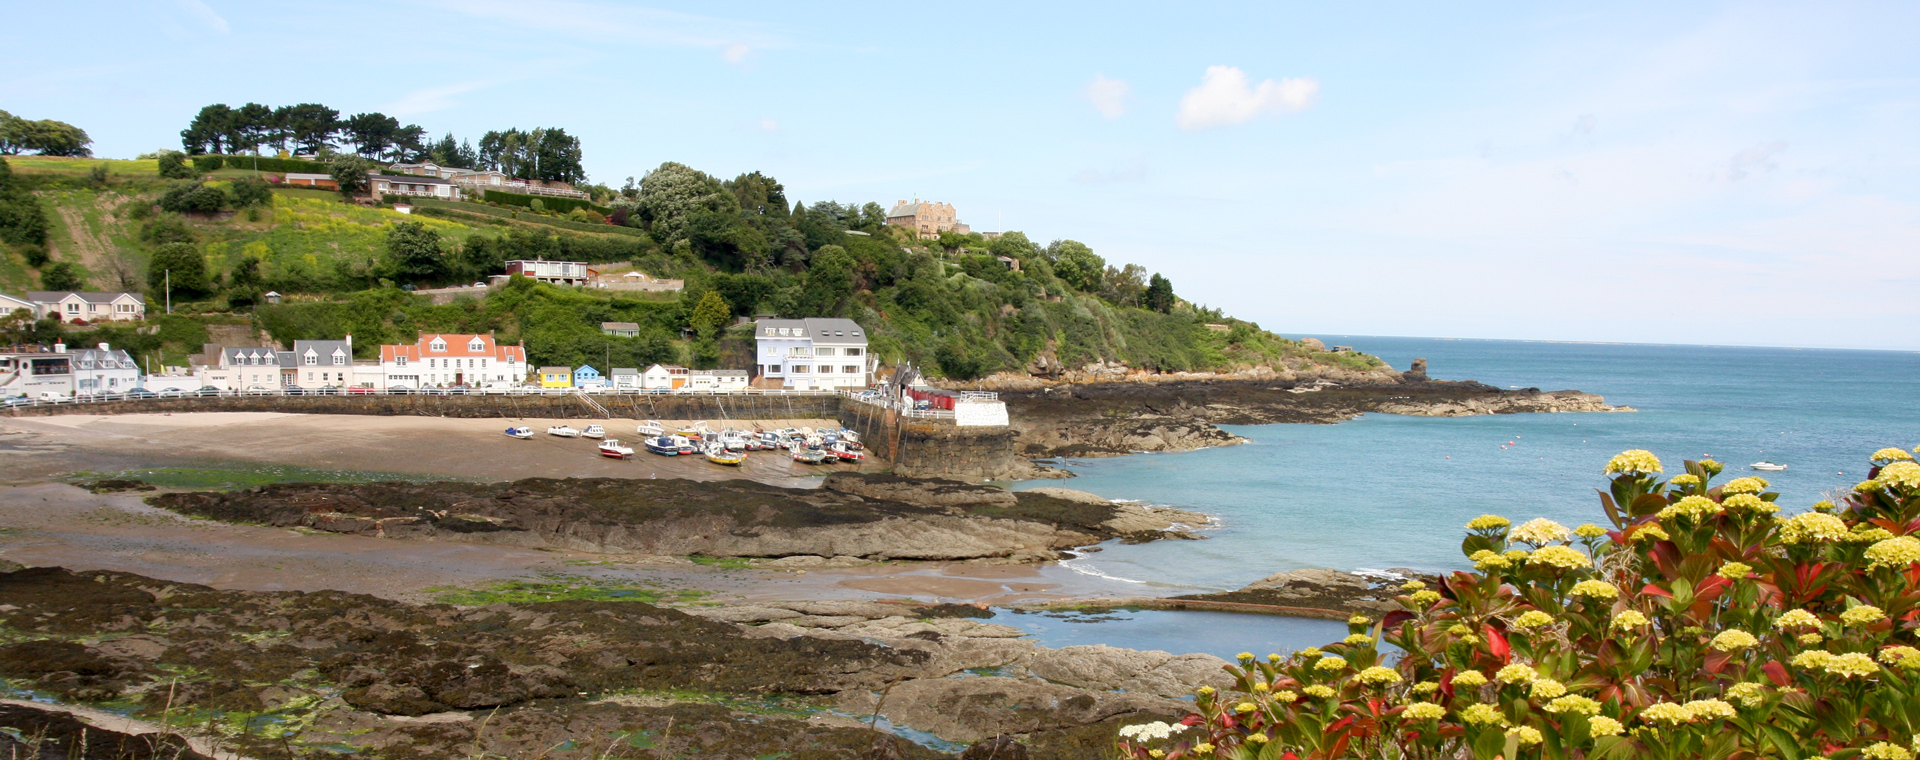 Image Îles Anglo-Normandes : Jersey, Guernesey, Sark et Herm